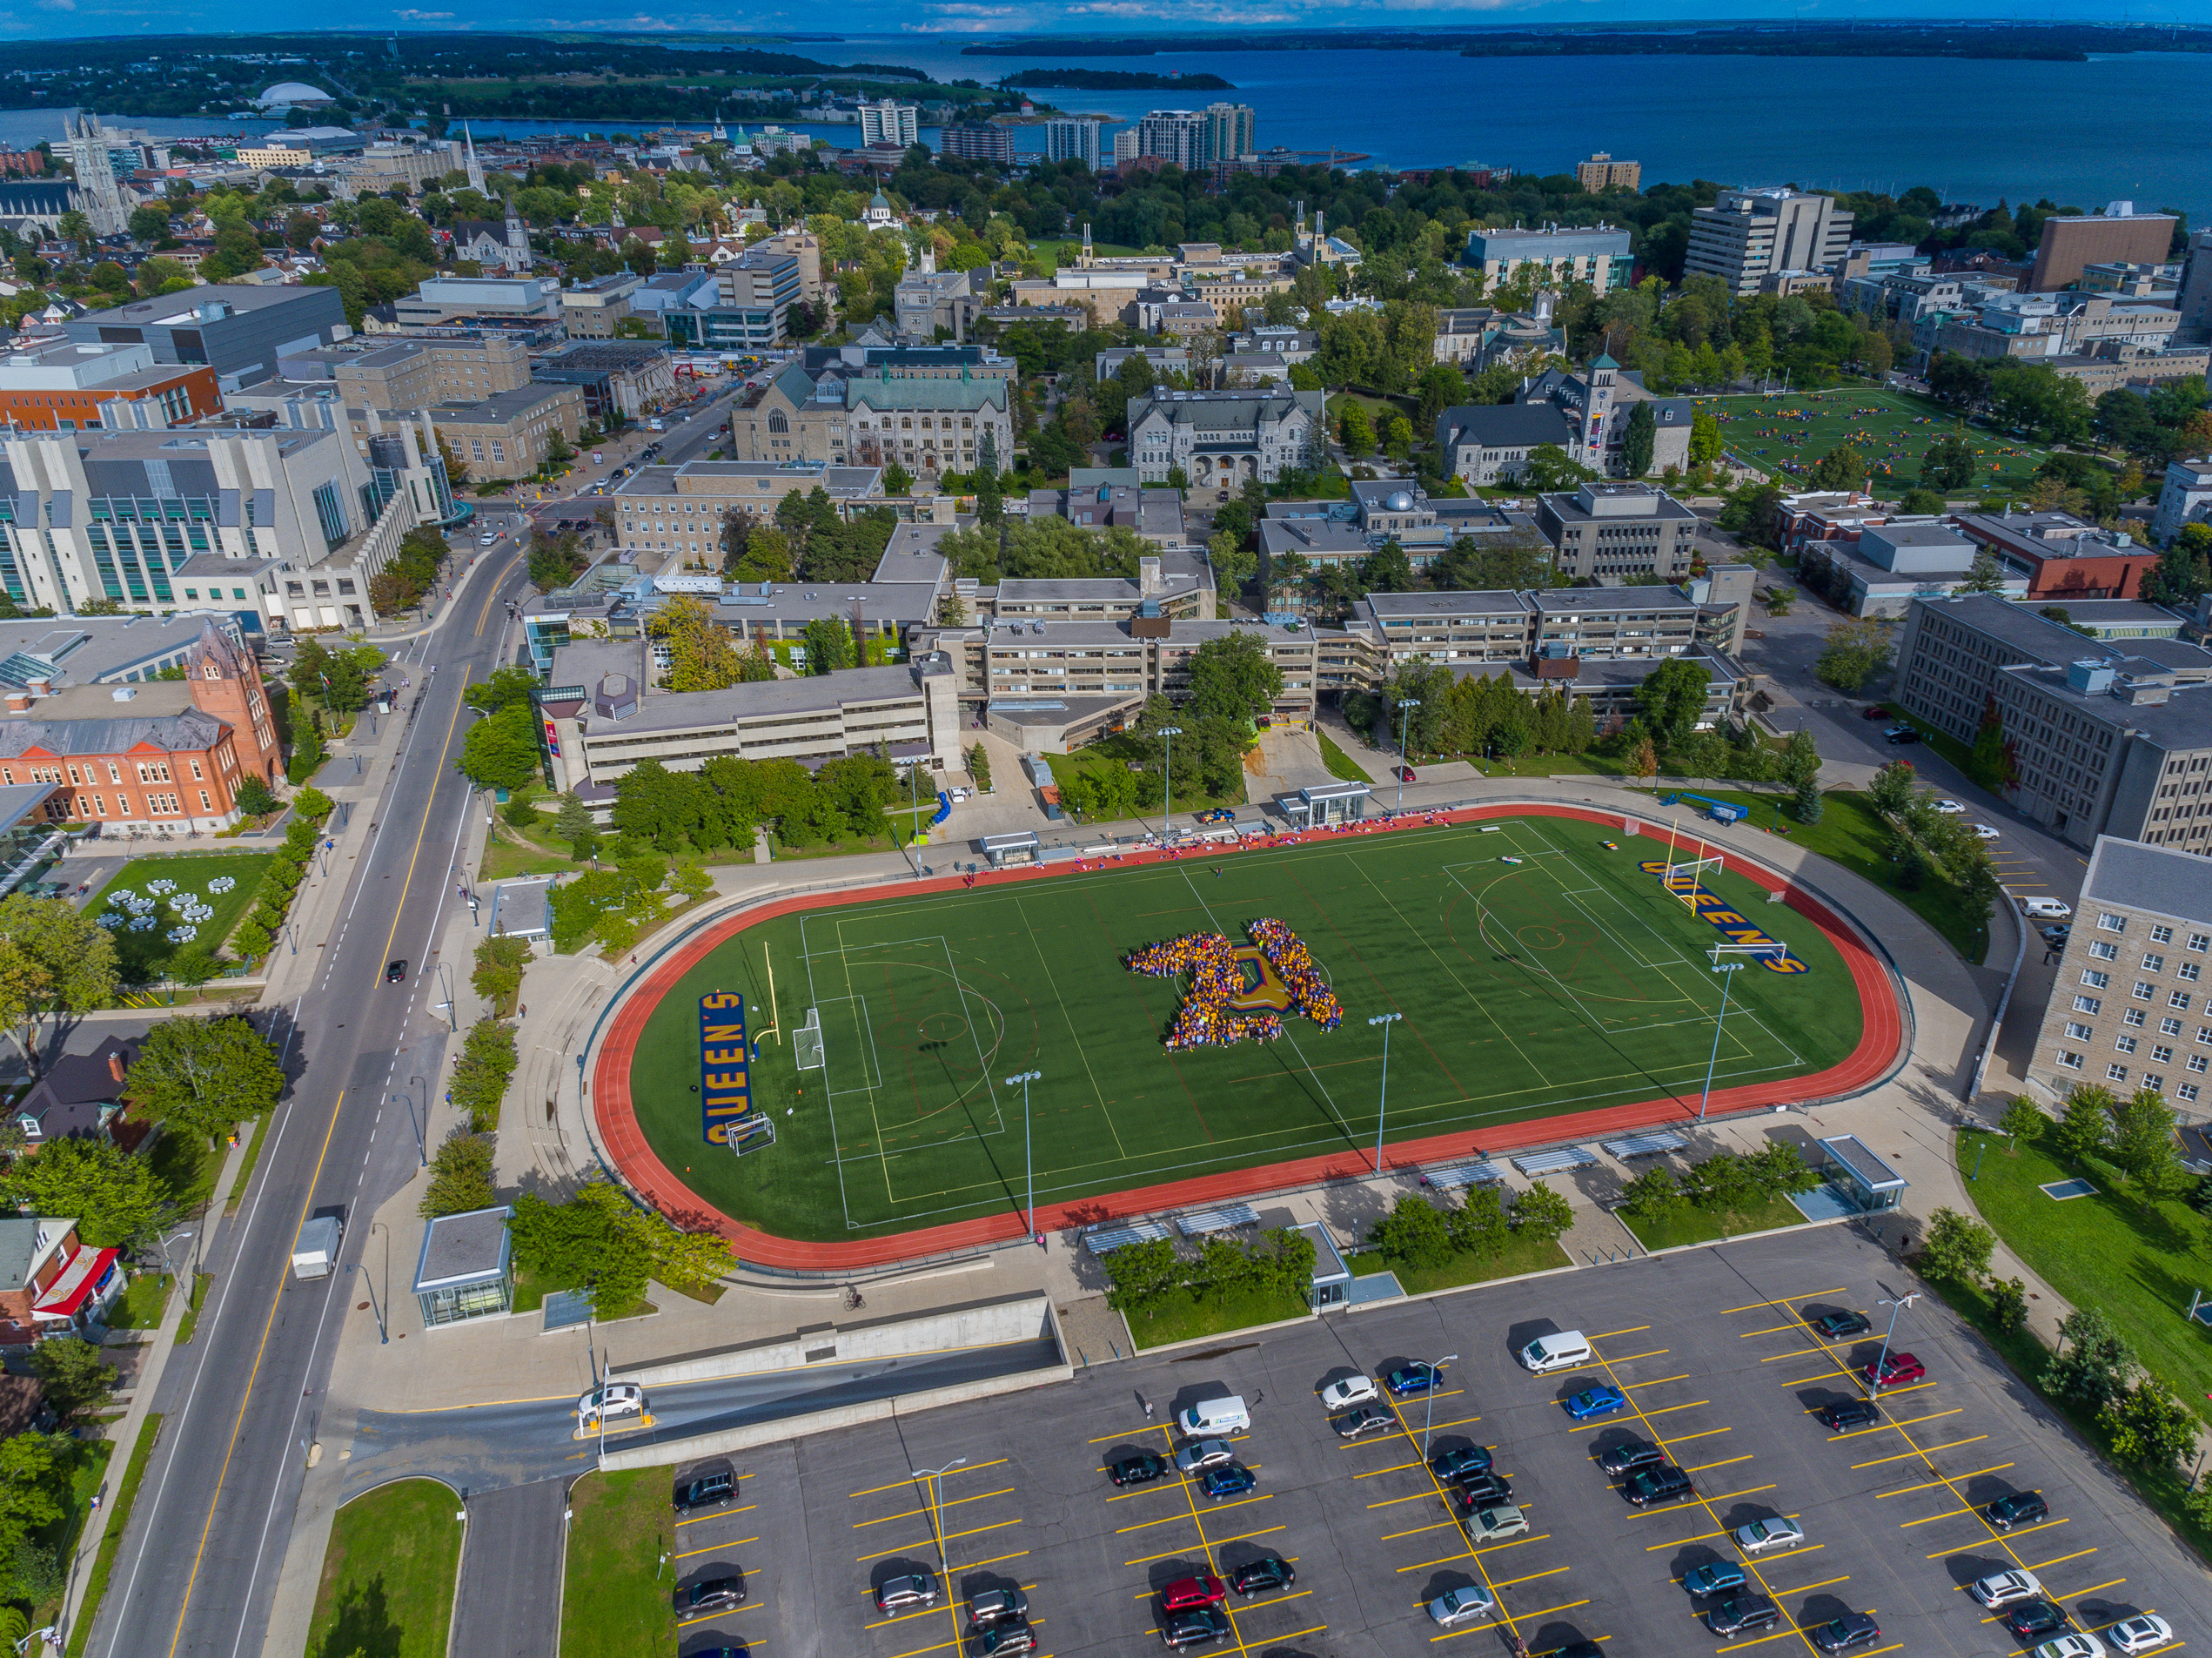 Drone Photographer Kingston